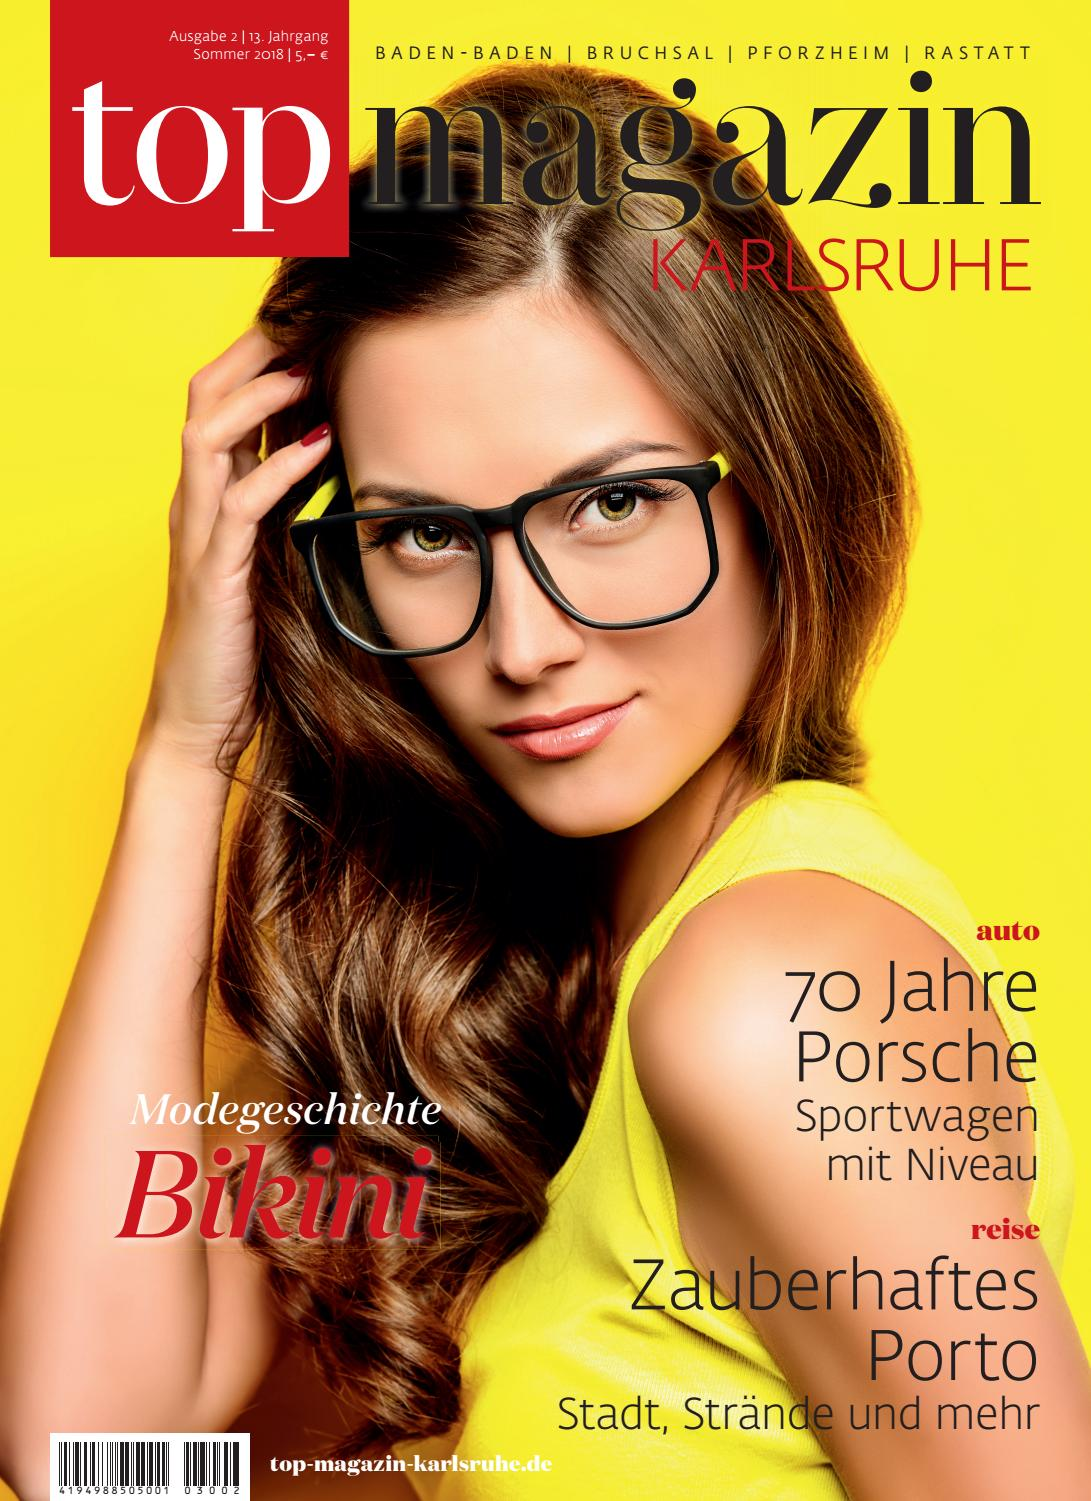 Top Magazin Karlsruhe Sommer 2018 by Top Magazin - issuu